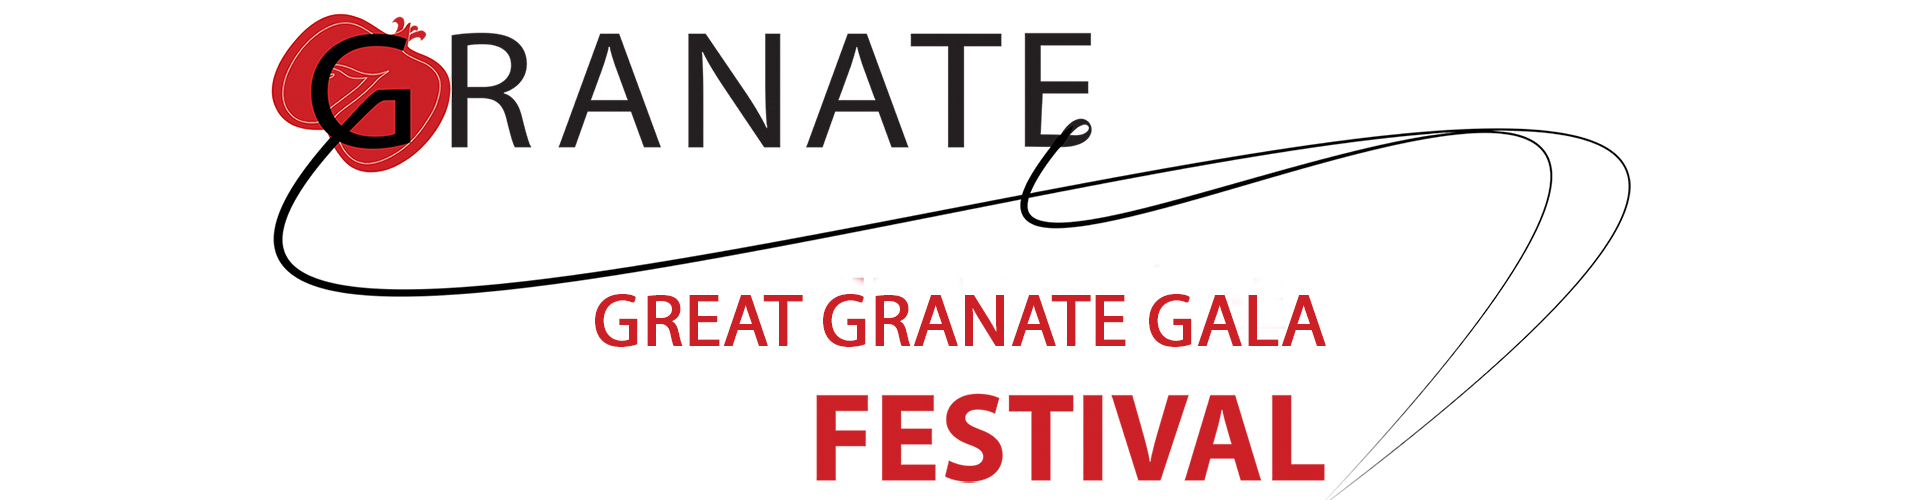 Granate Festival | Great Granate Gala